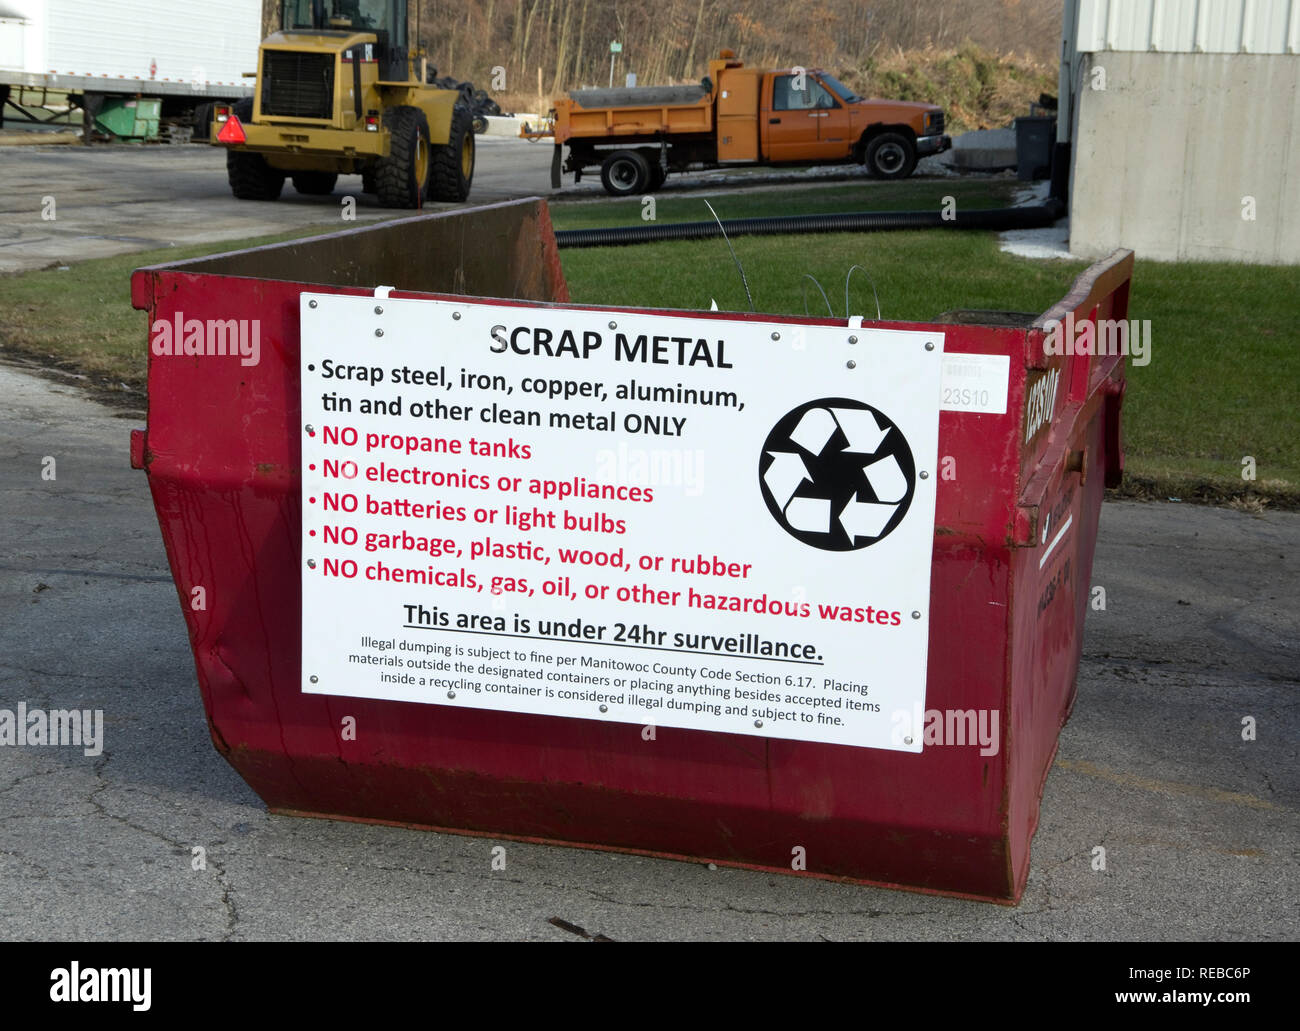 Community recycling scrap metal collection bin with sign displaying guidelines and regulations. - Stock Image